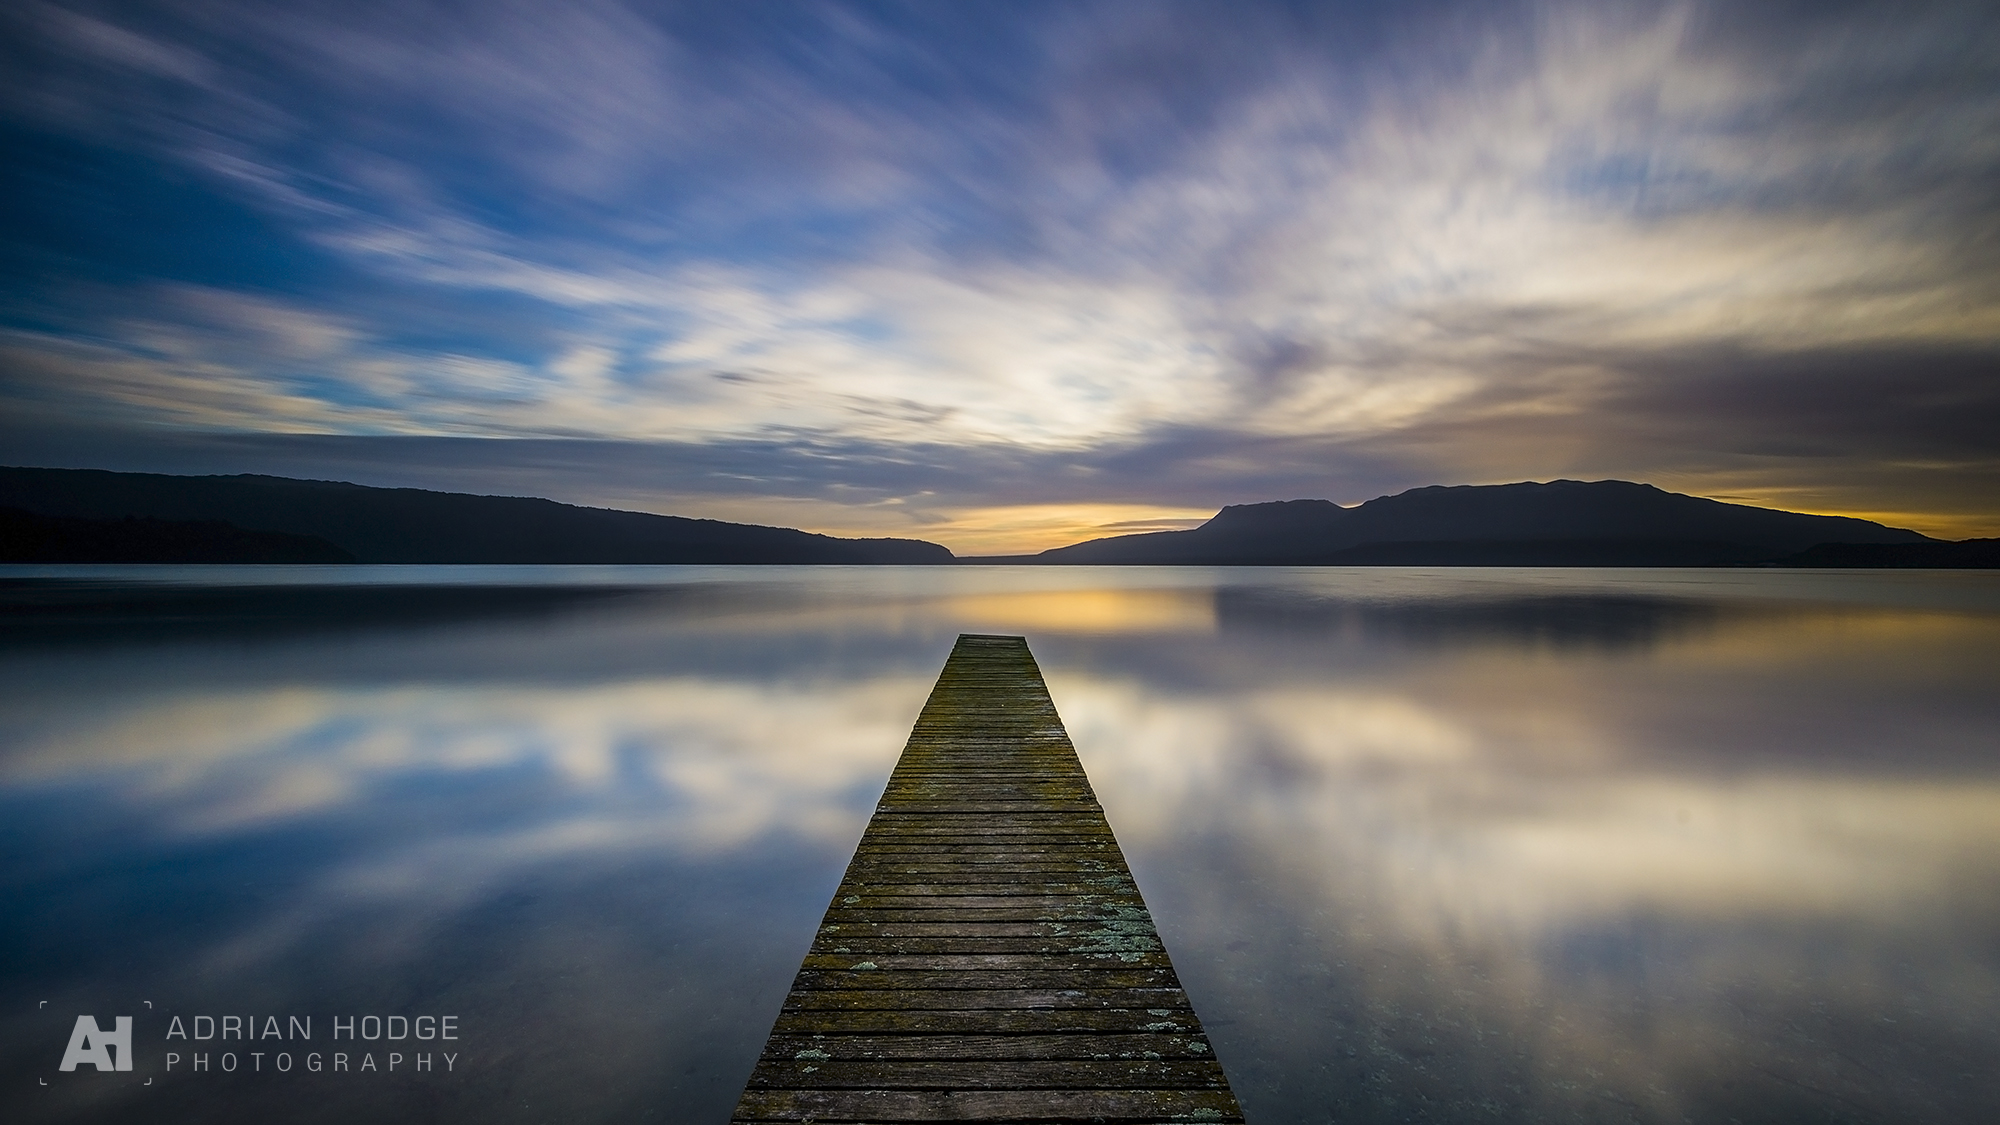 Colours Tranquility Over Tarawera Adrian Hodge Photography